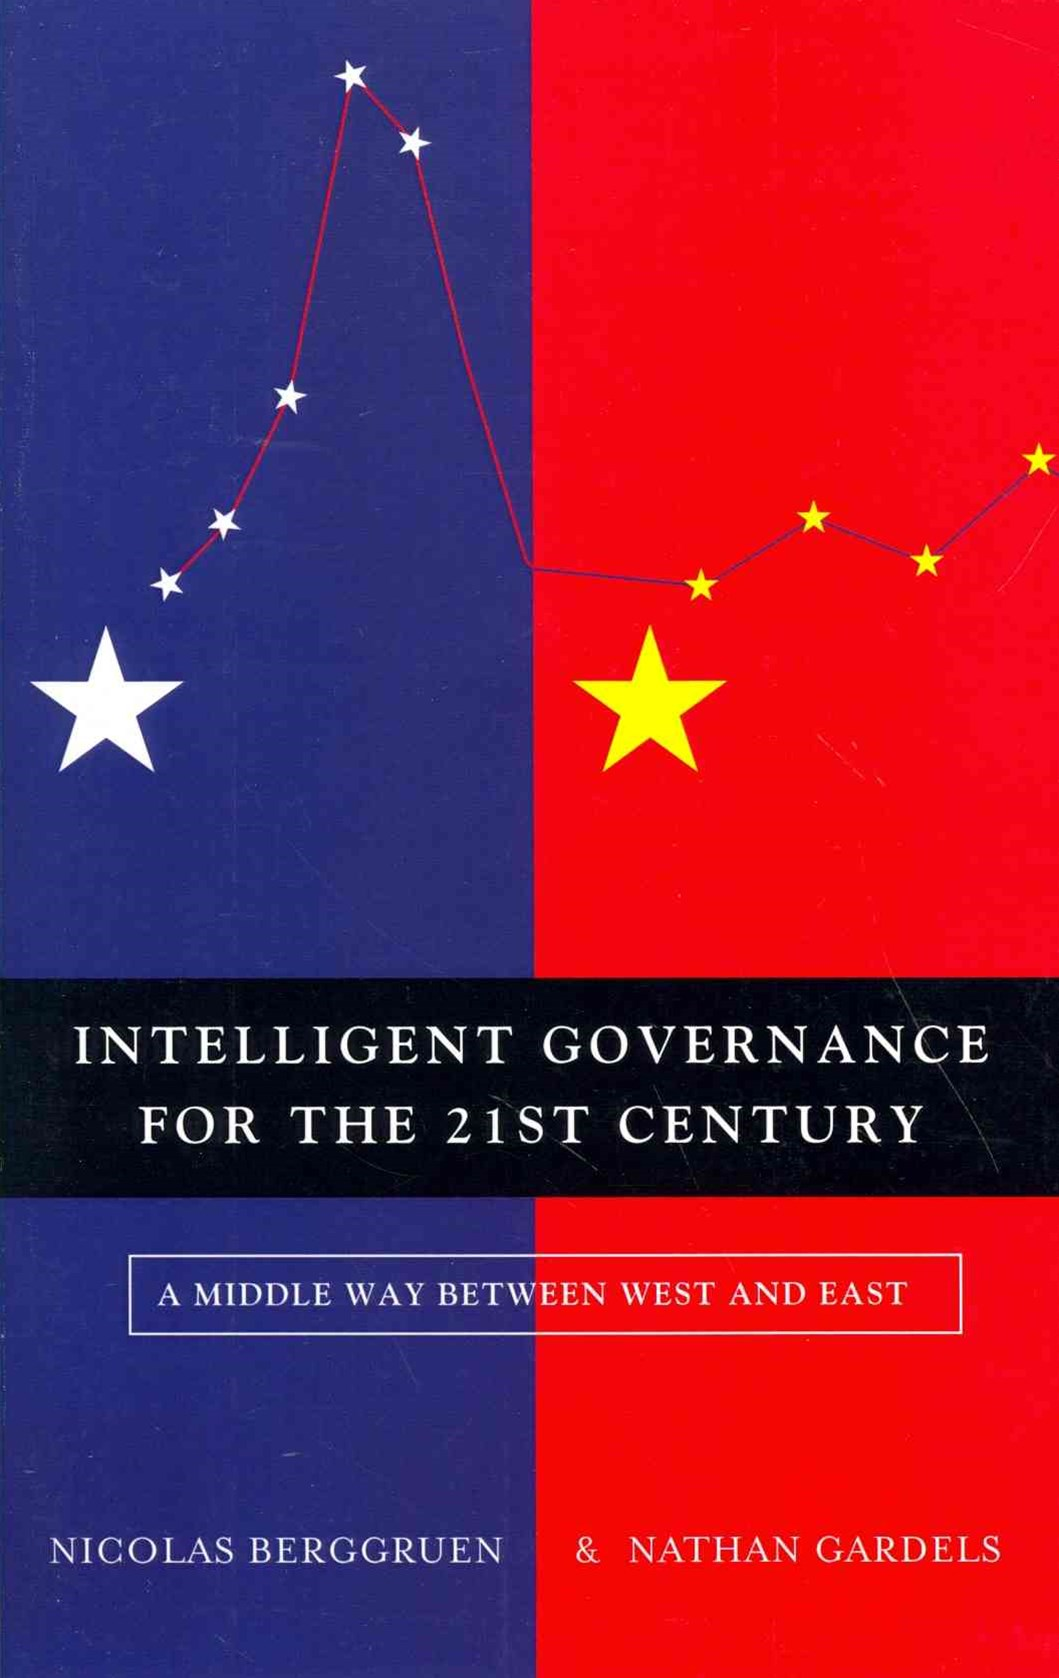 Intelligent Governance for the 21st Century - a   Middle Way Between West and East